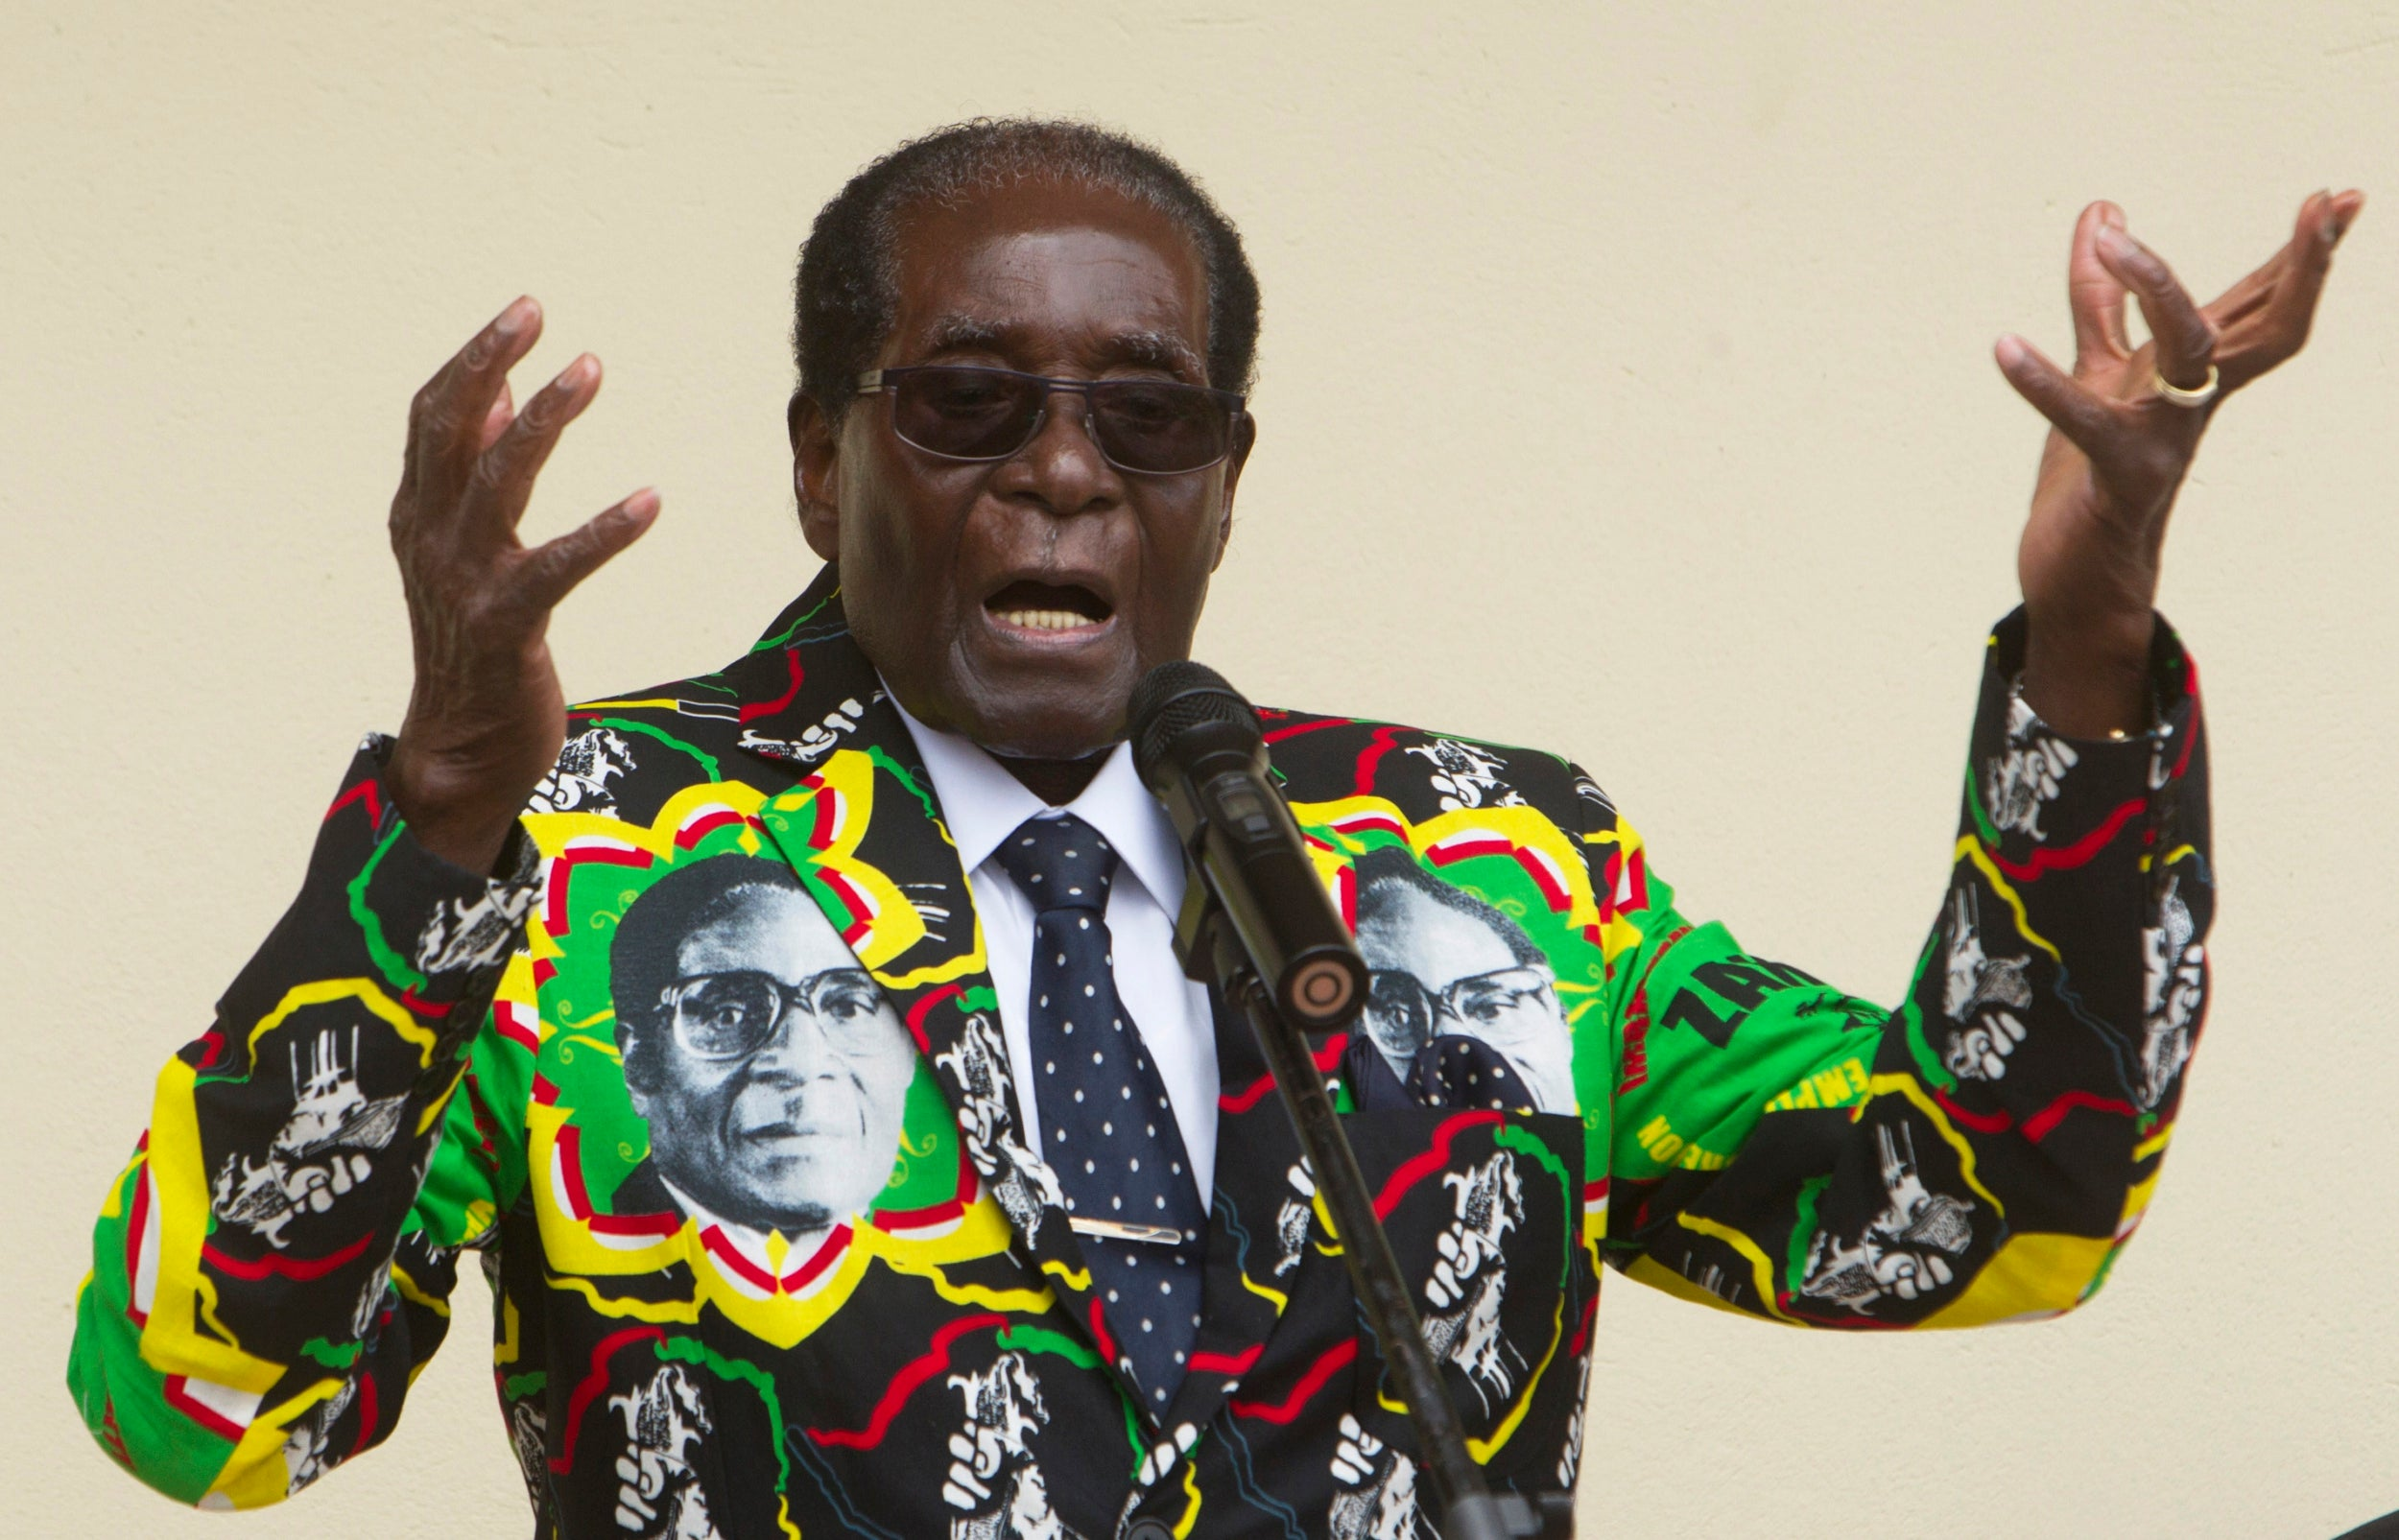 Robert Mugabe: Zimbabwean independence leader who lost touch with his people